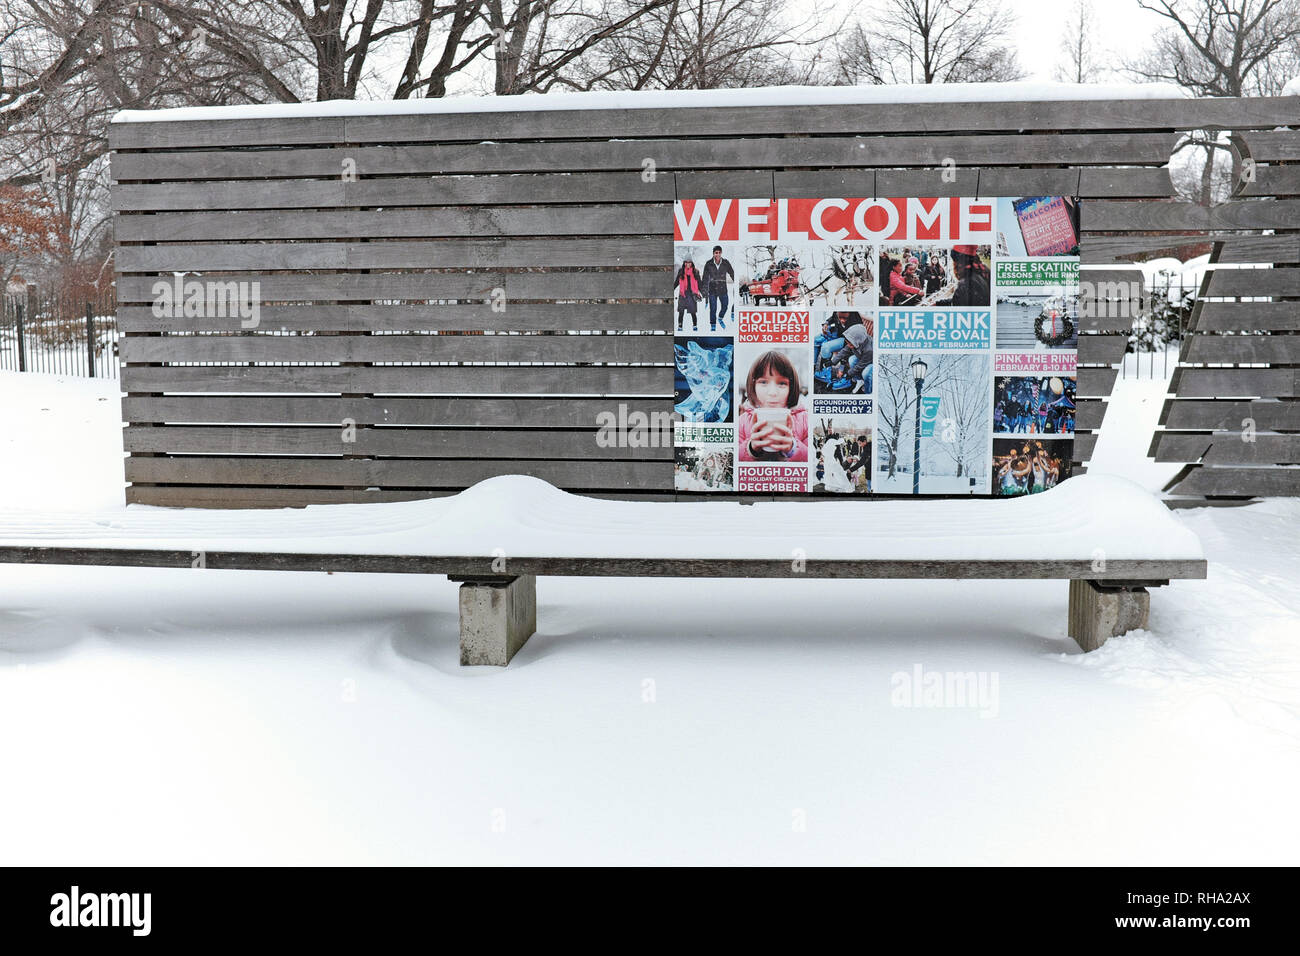 Winter in Wade Park Oval in Cleveland, Ohio, USA. - Stock Image